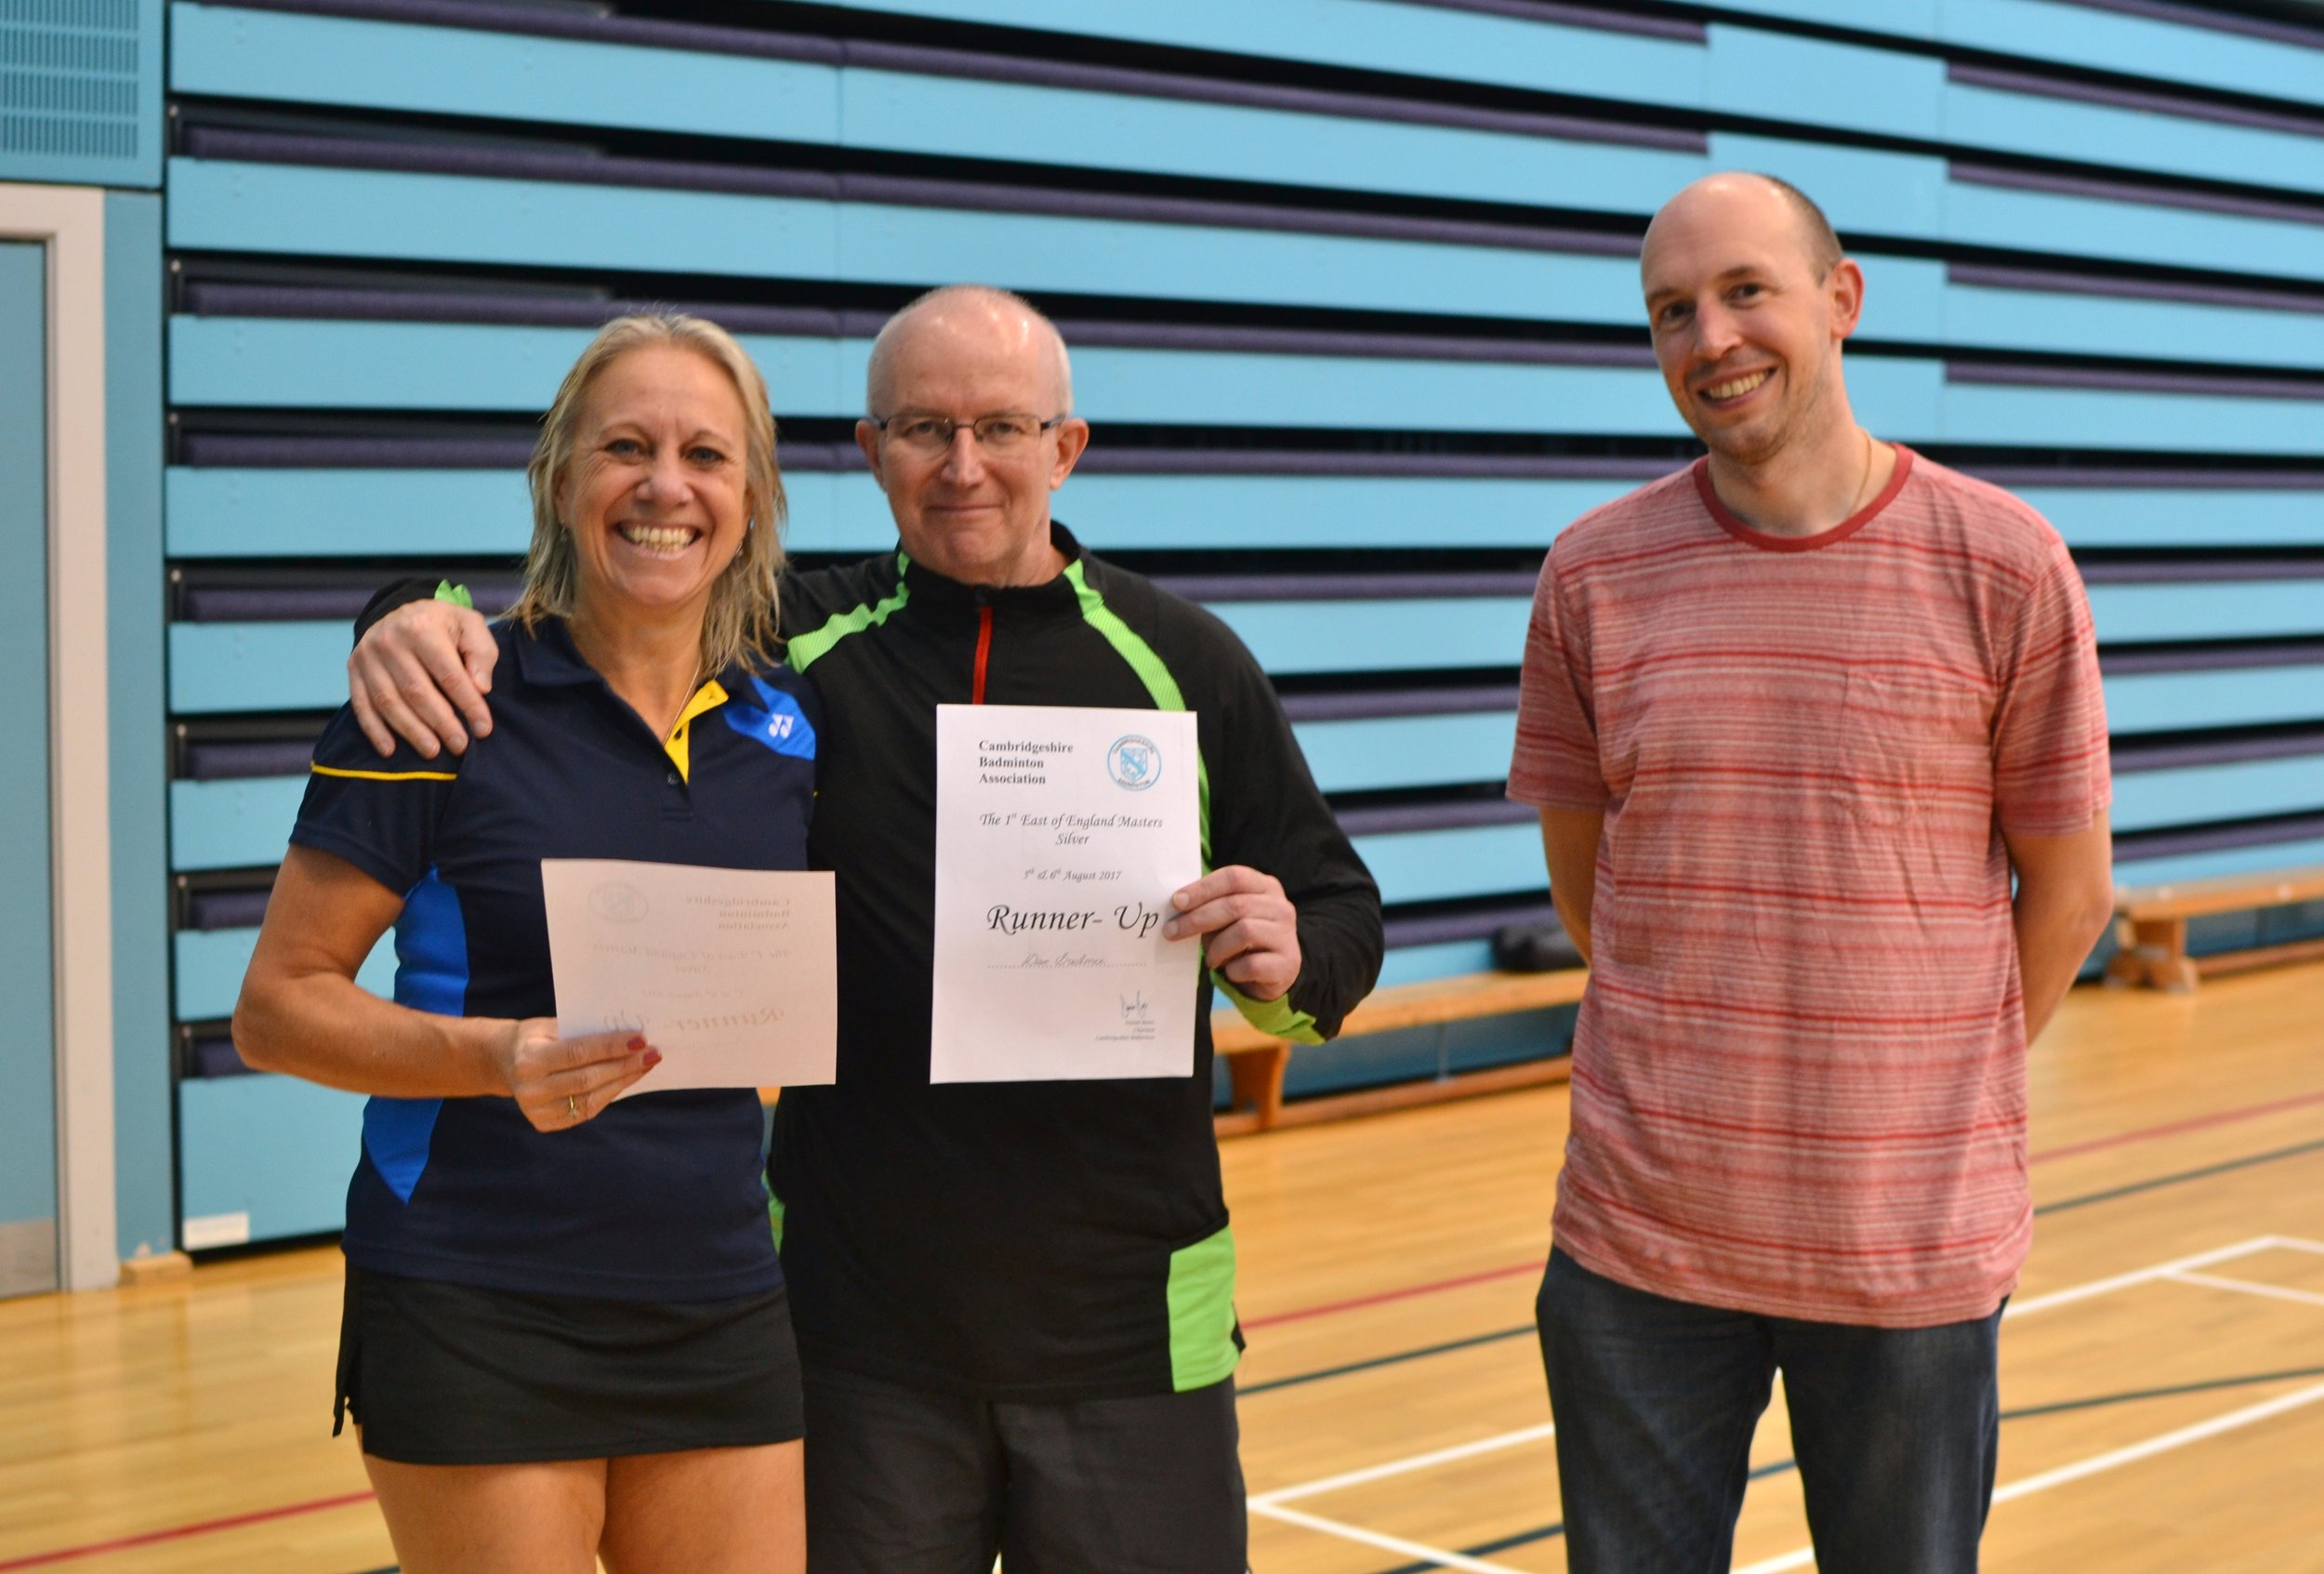 XD Masters O55 runners up Susan Tooke and Dave Greatorex